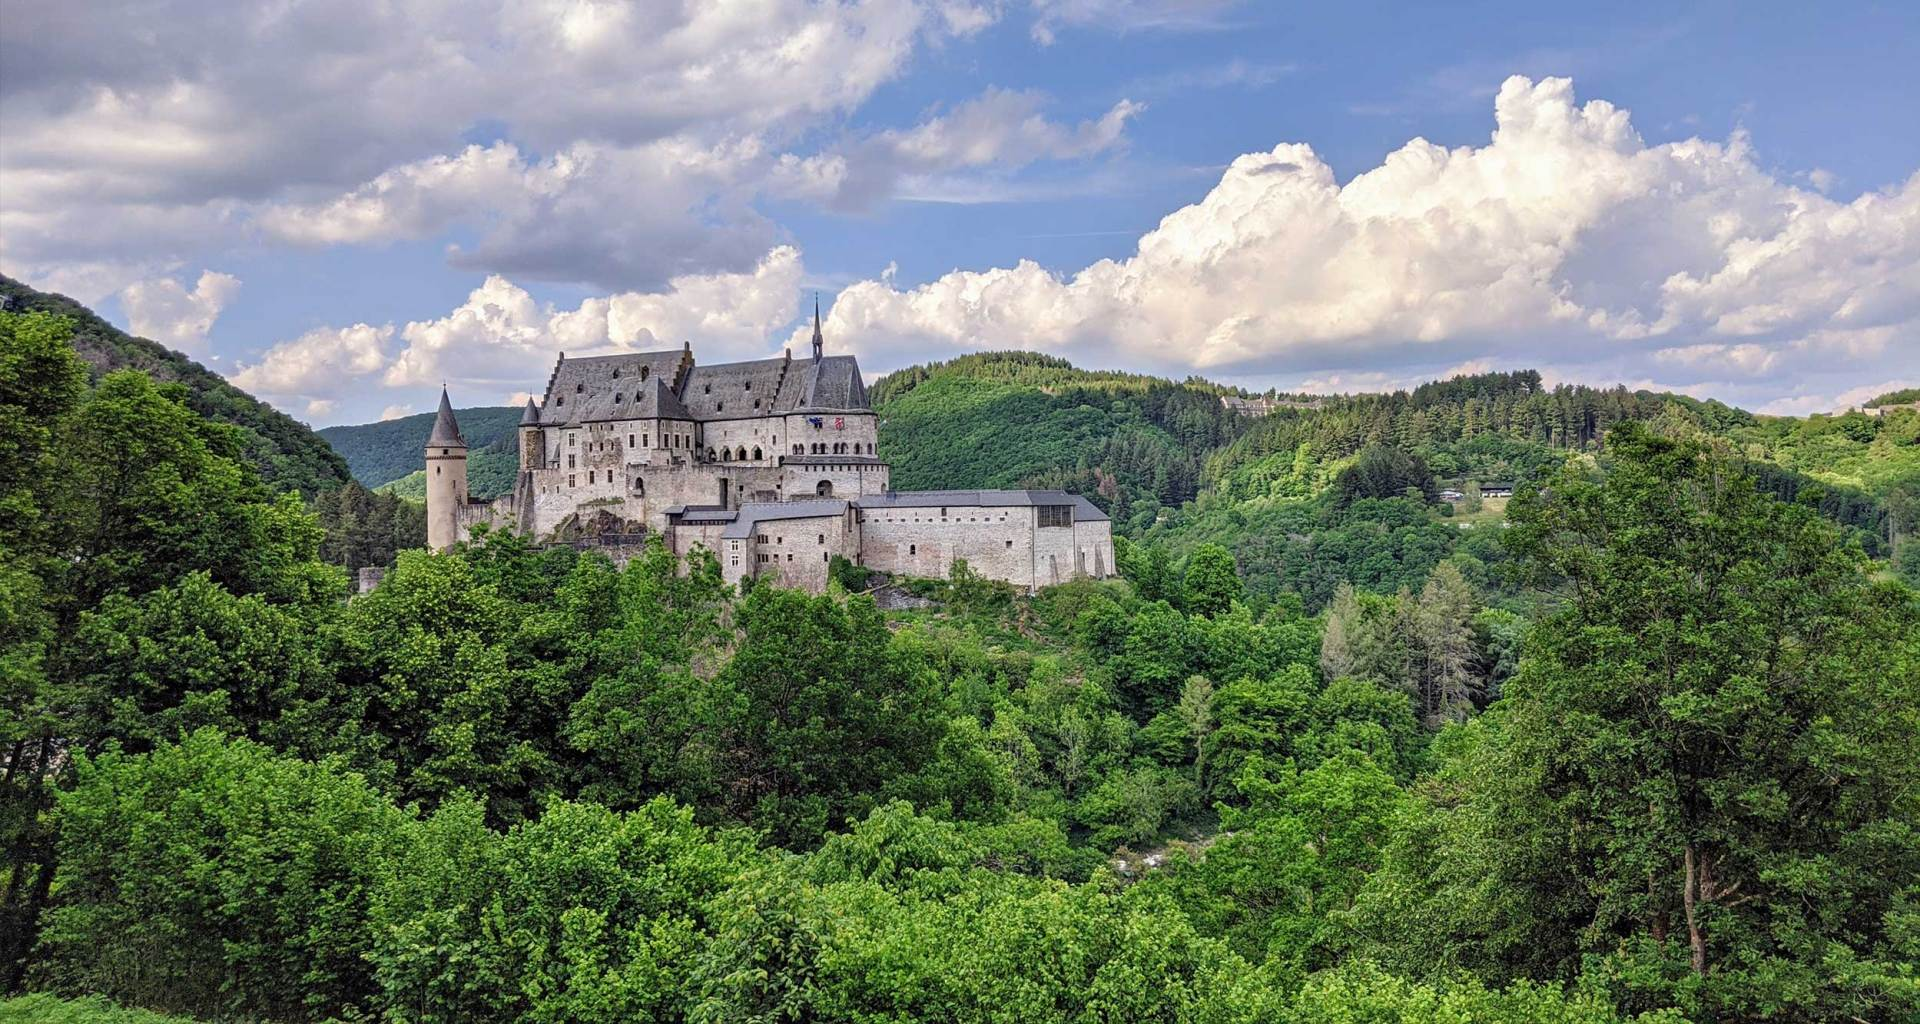 Castle amid a dense forest.